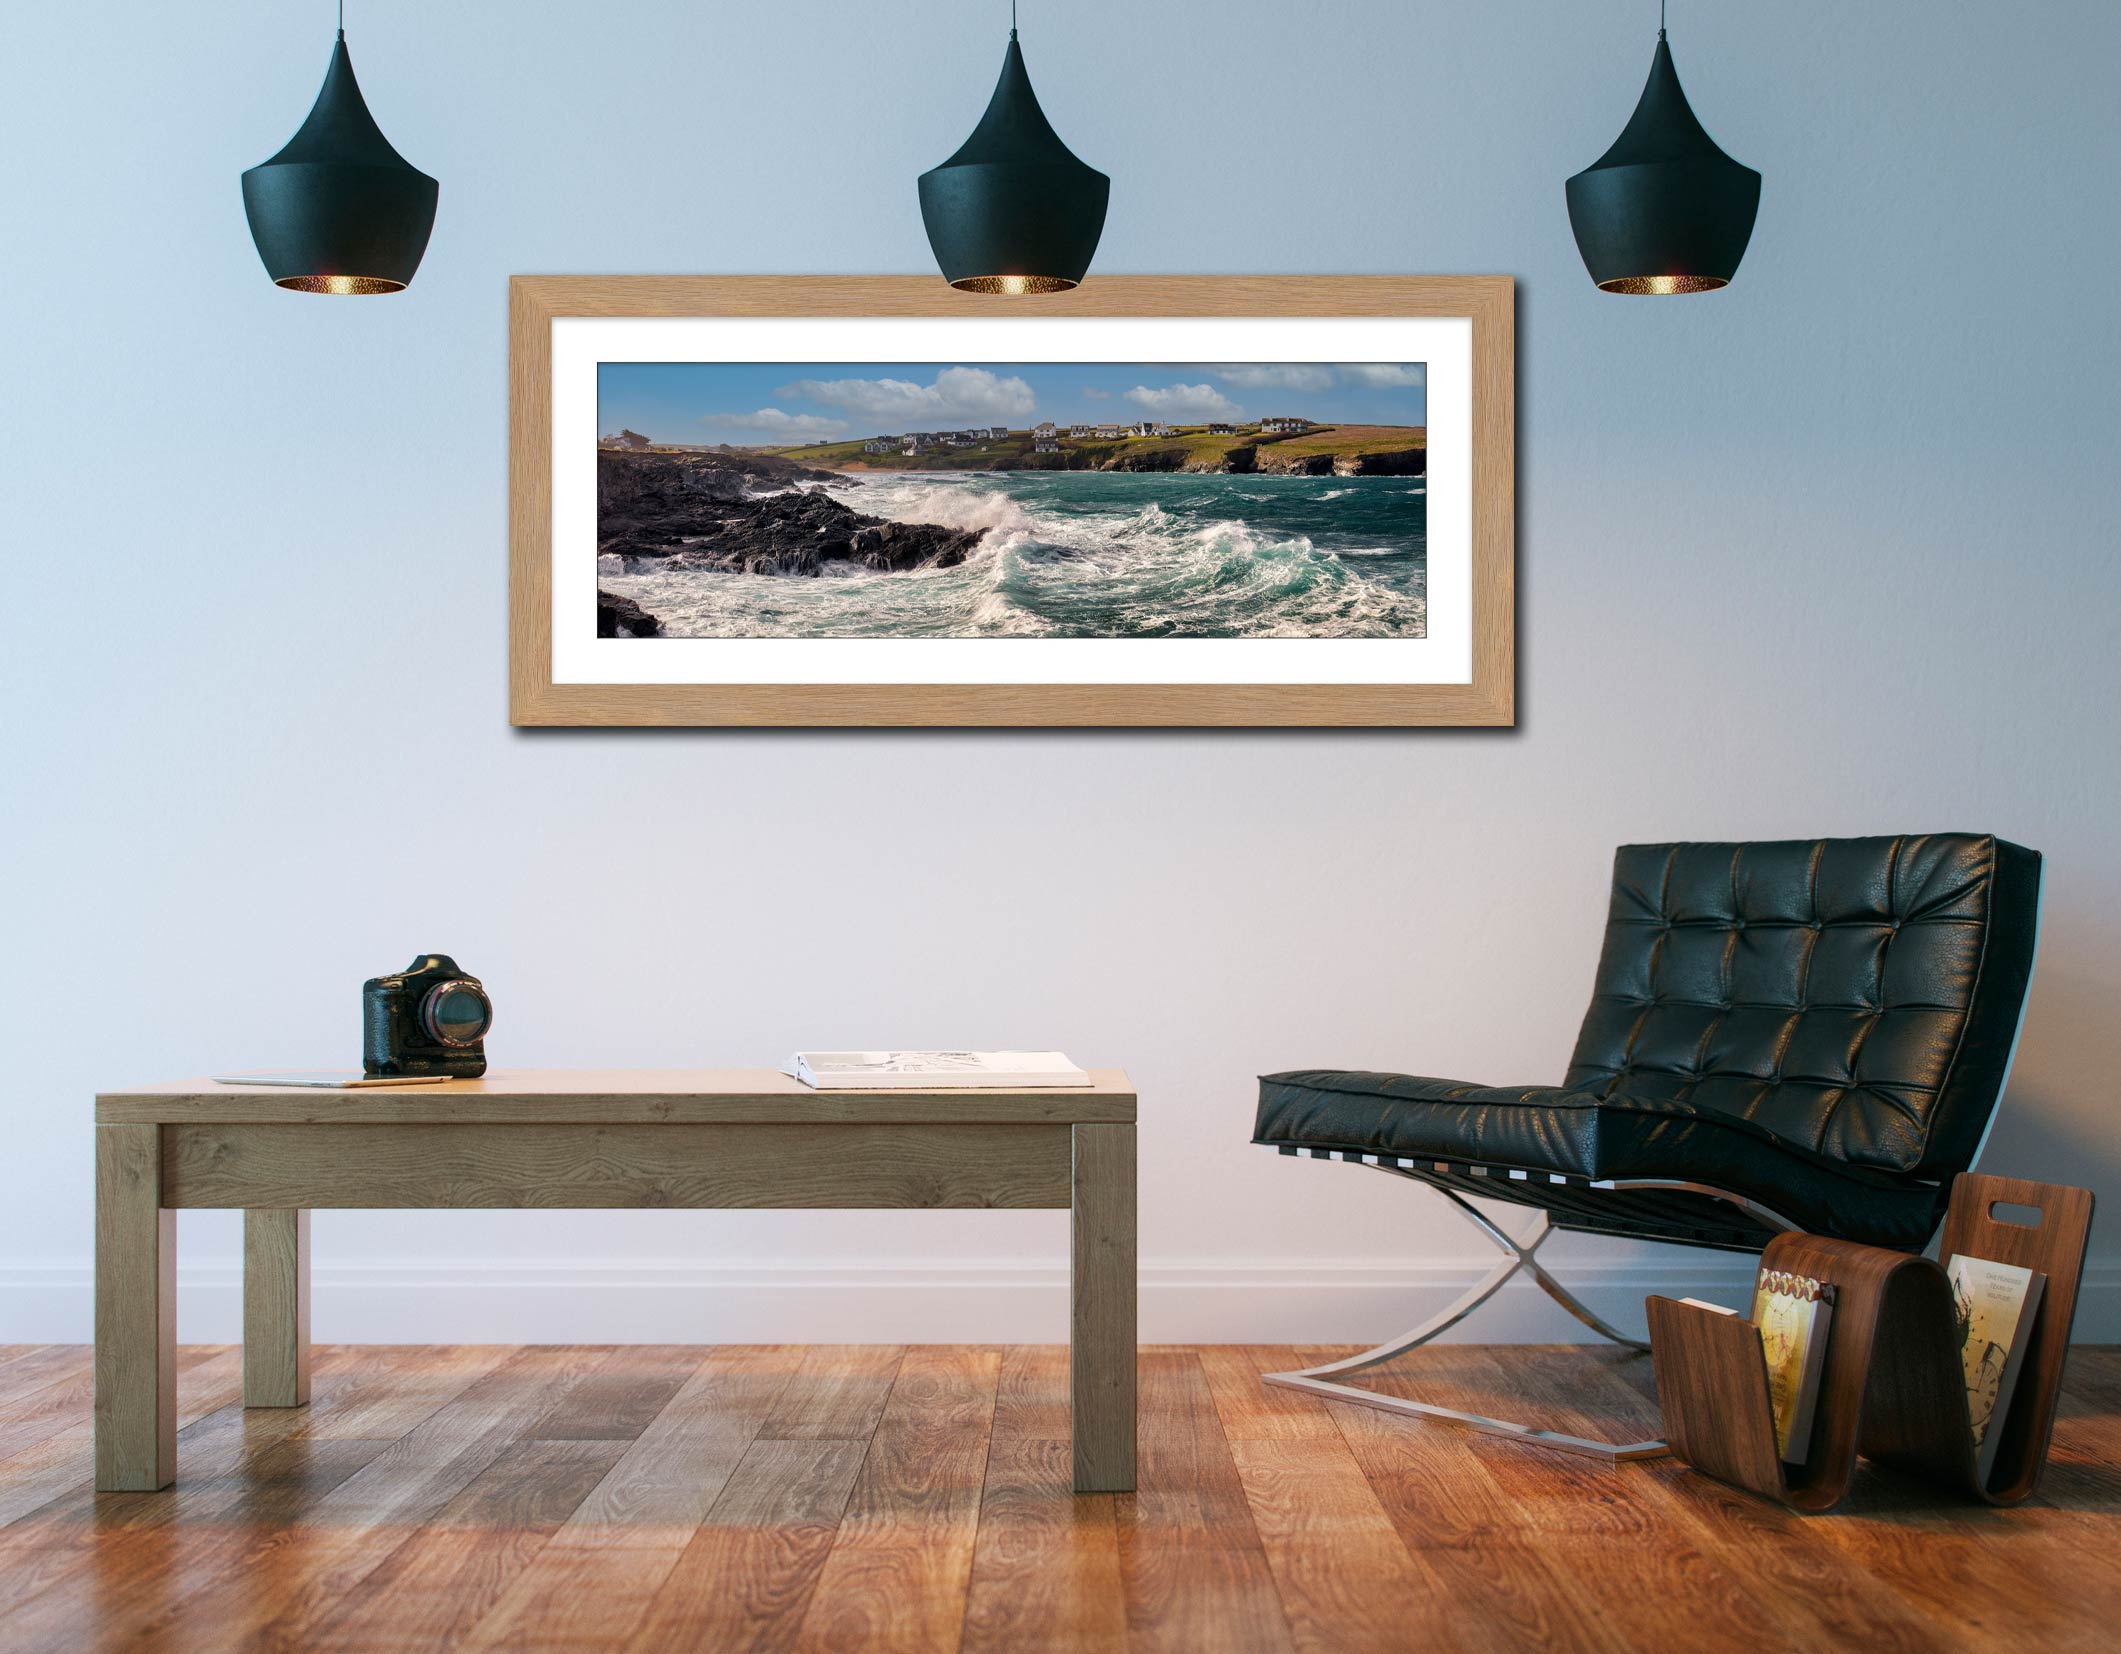 Waves in Treyarnon Bay - Framed Print with Mount on Wall